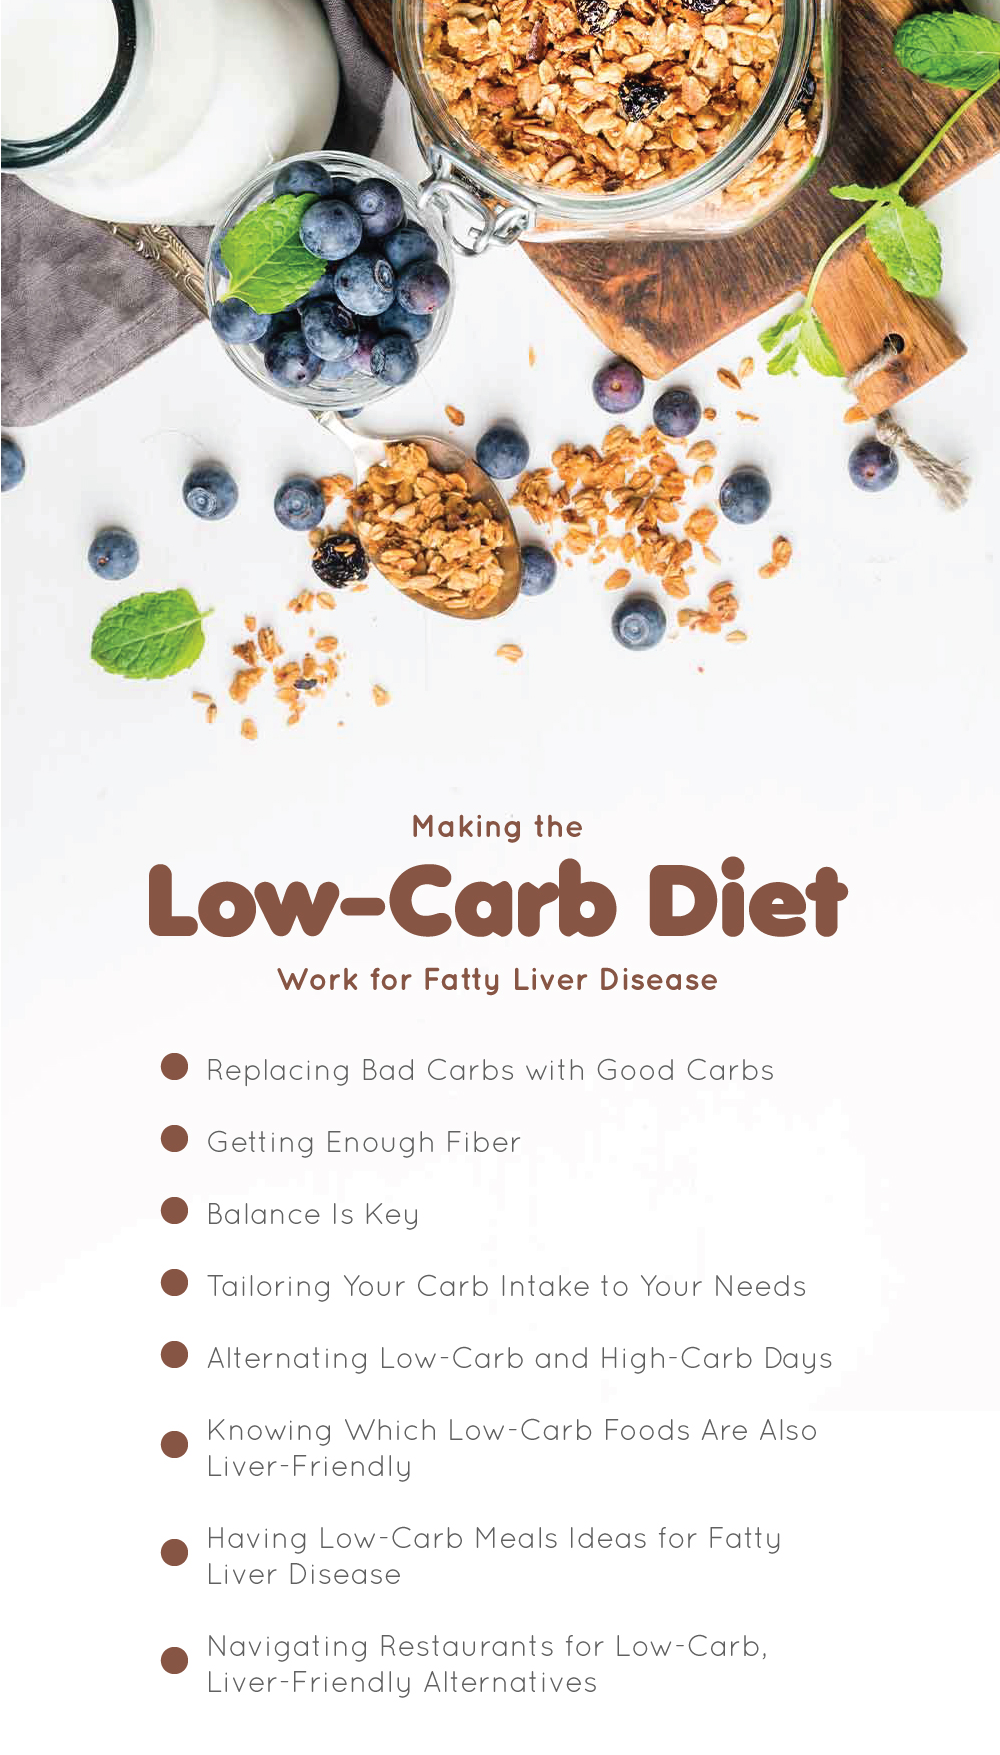 Making the Low-Carb Diet Work for Fatty Liver Disease